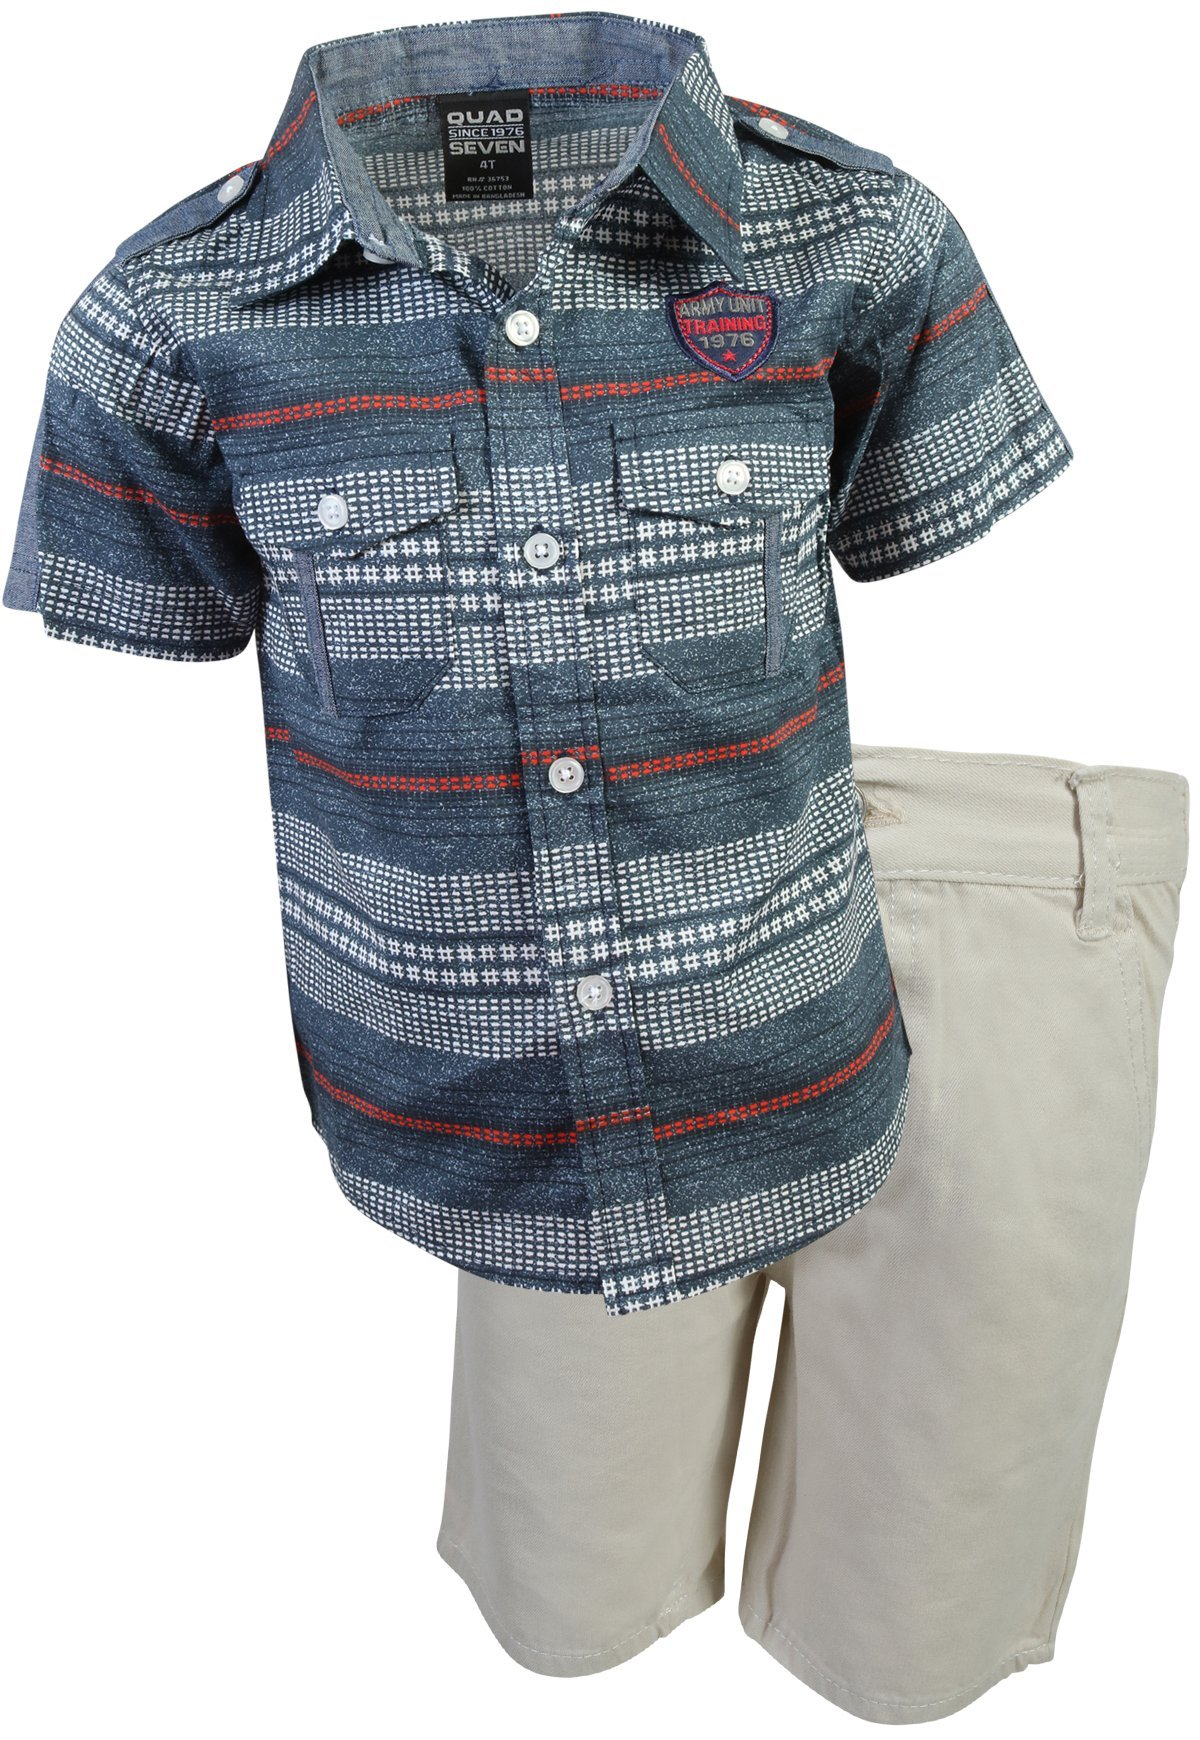 Quad Seven Boys Short Set Woven Top and Twill Shorts, Blue Denim/Stone, Size 5/6'